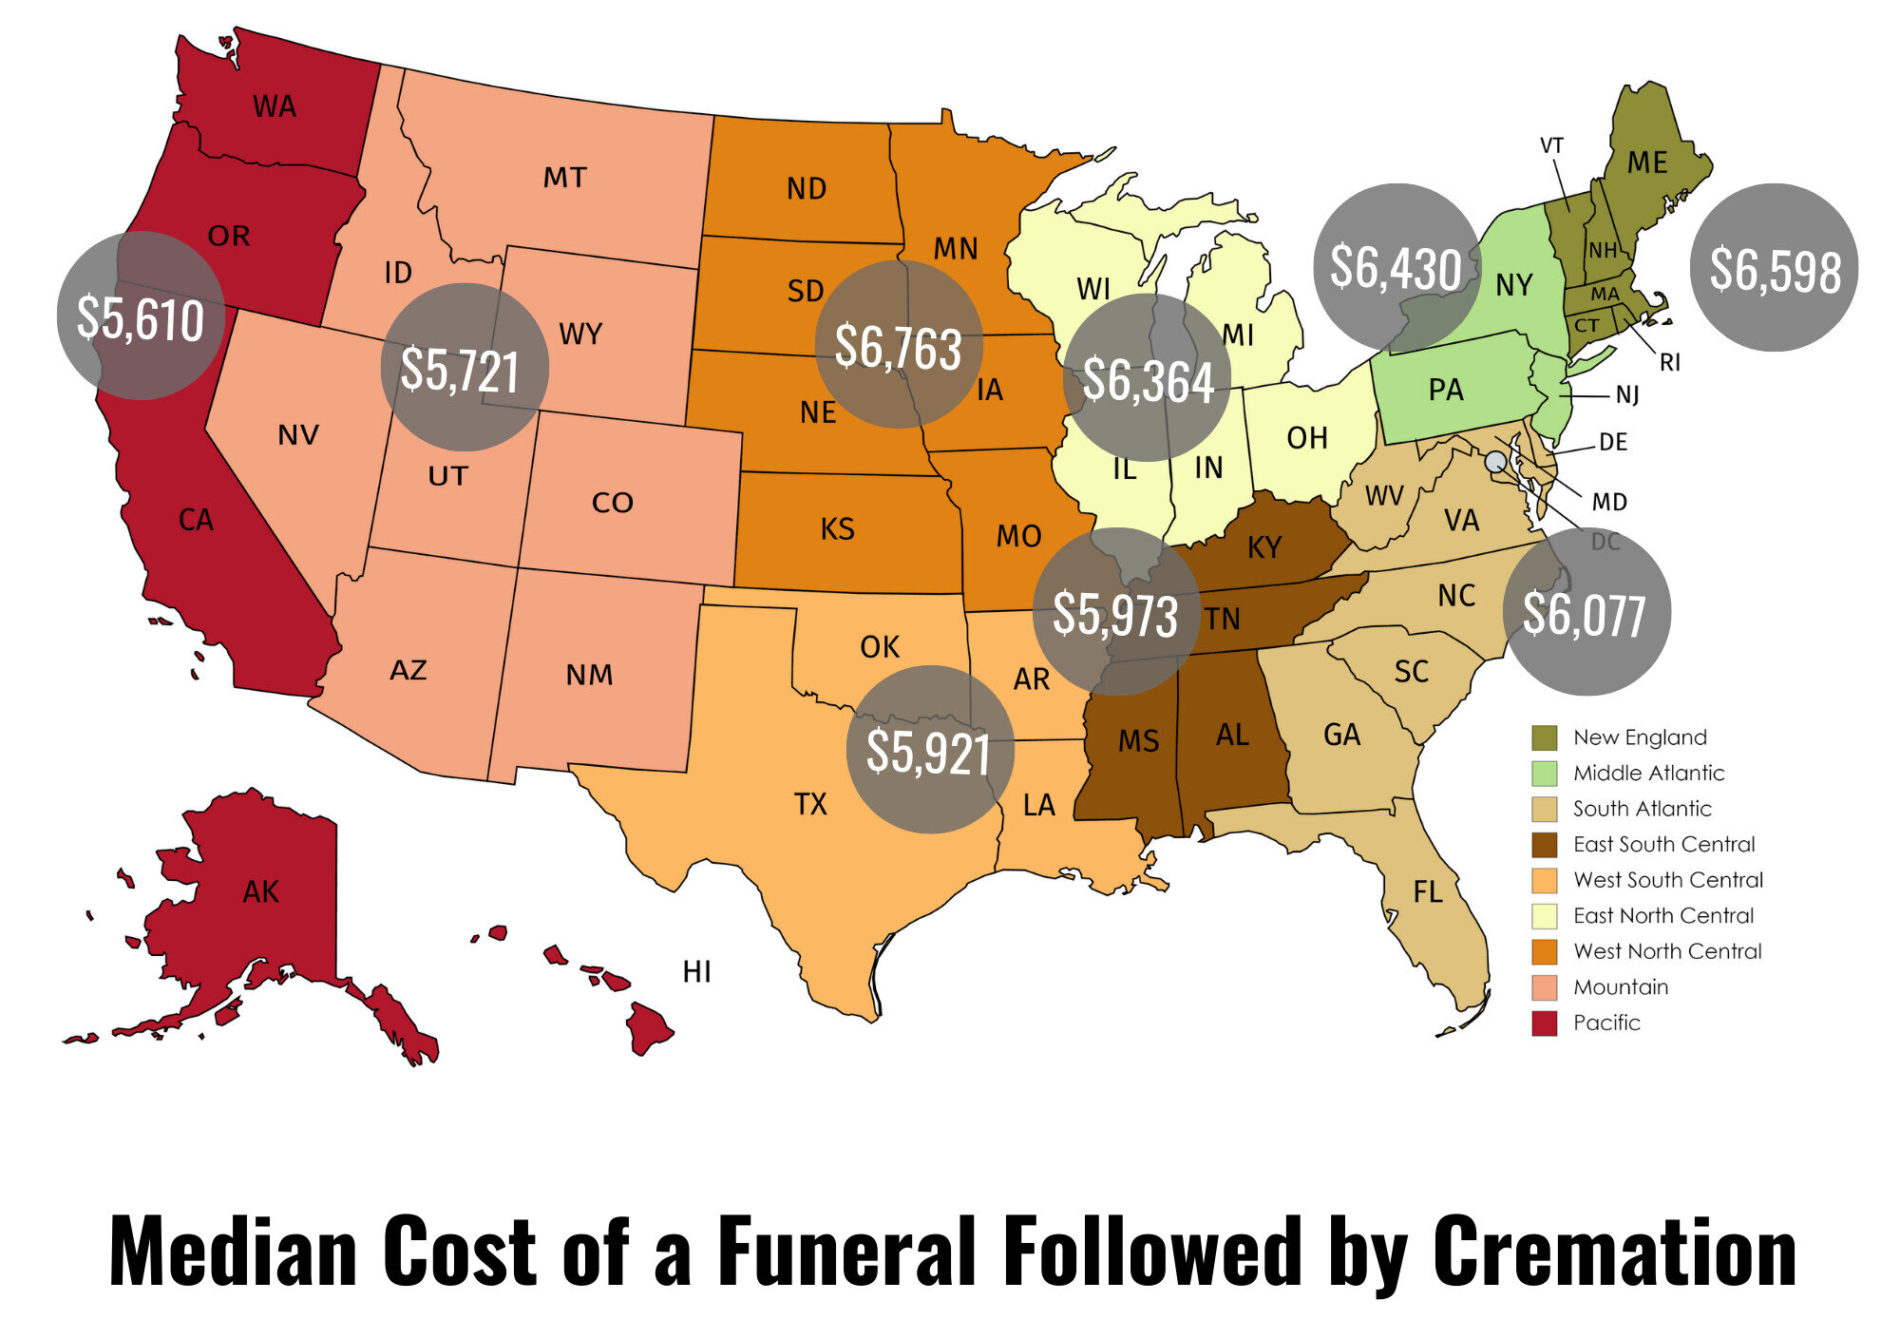 Median cost of a funeral with cremation in different parts of US.